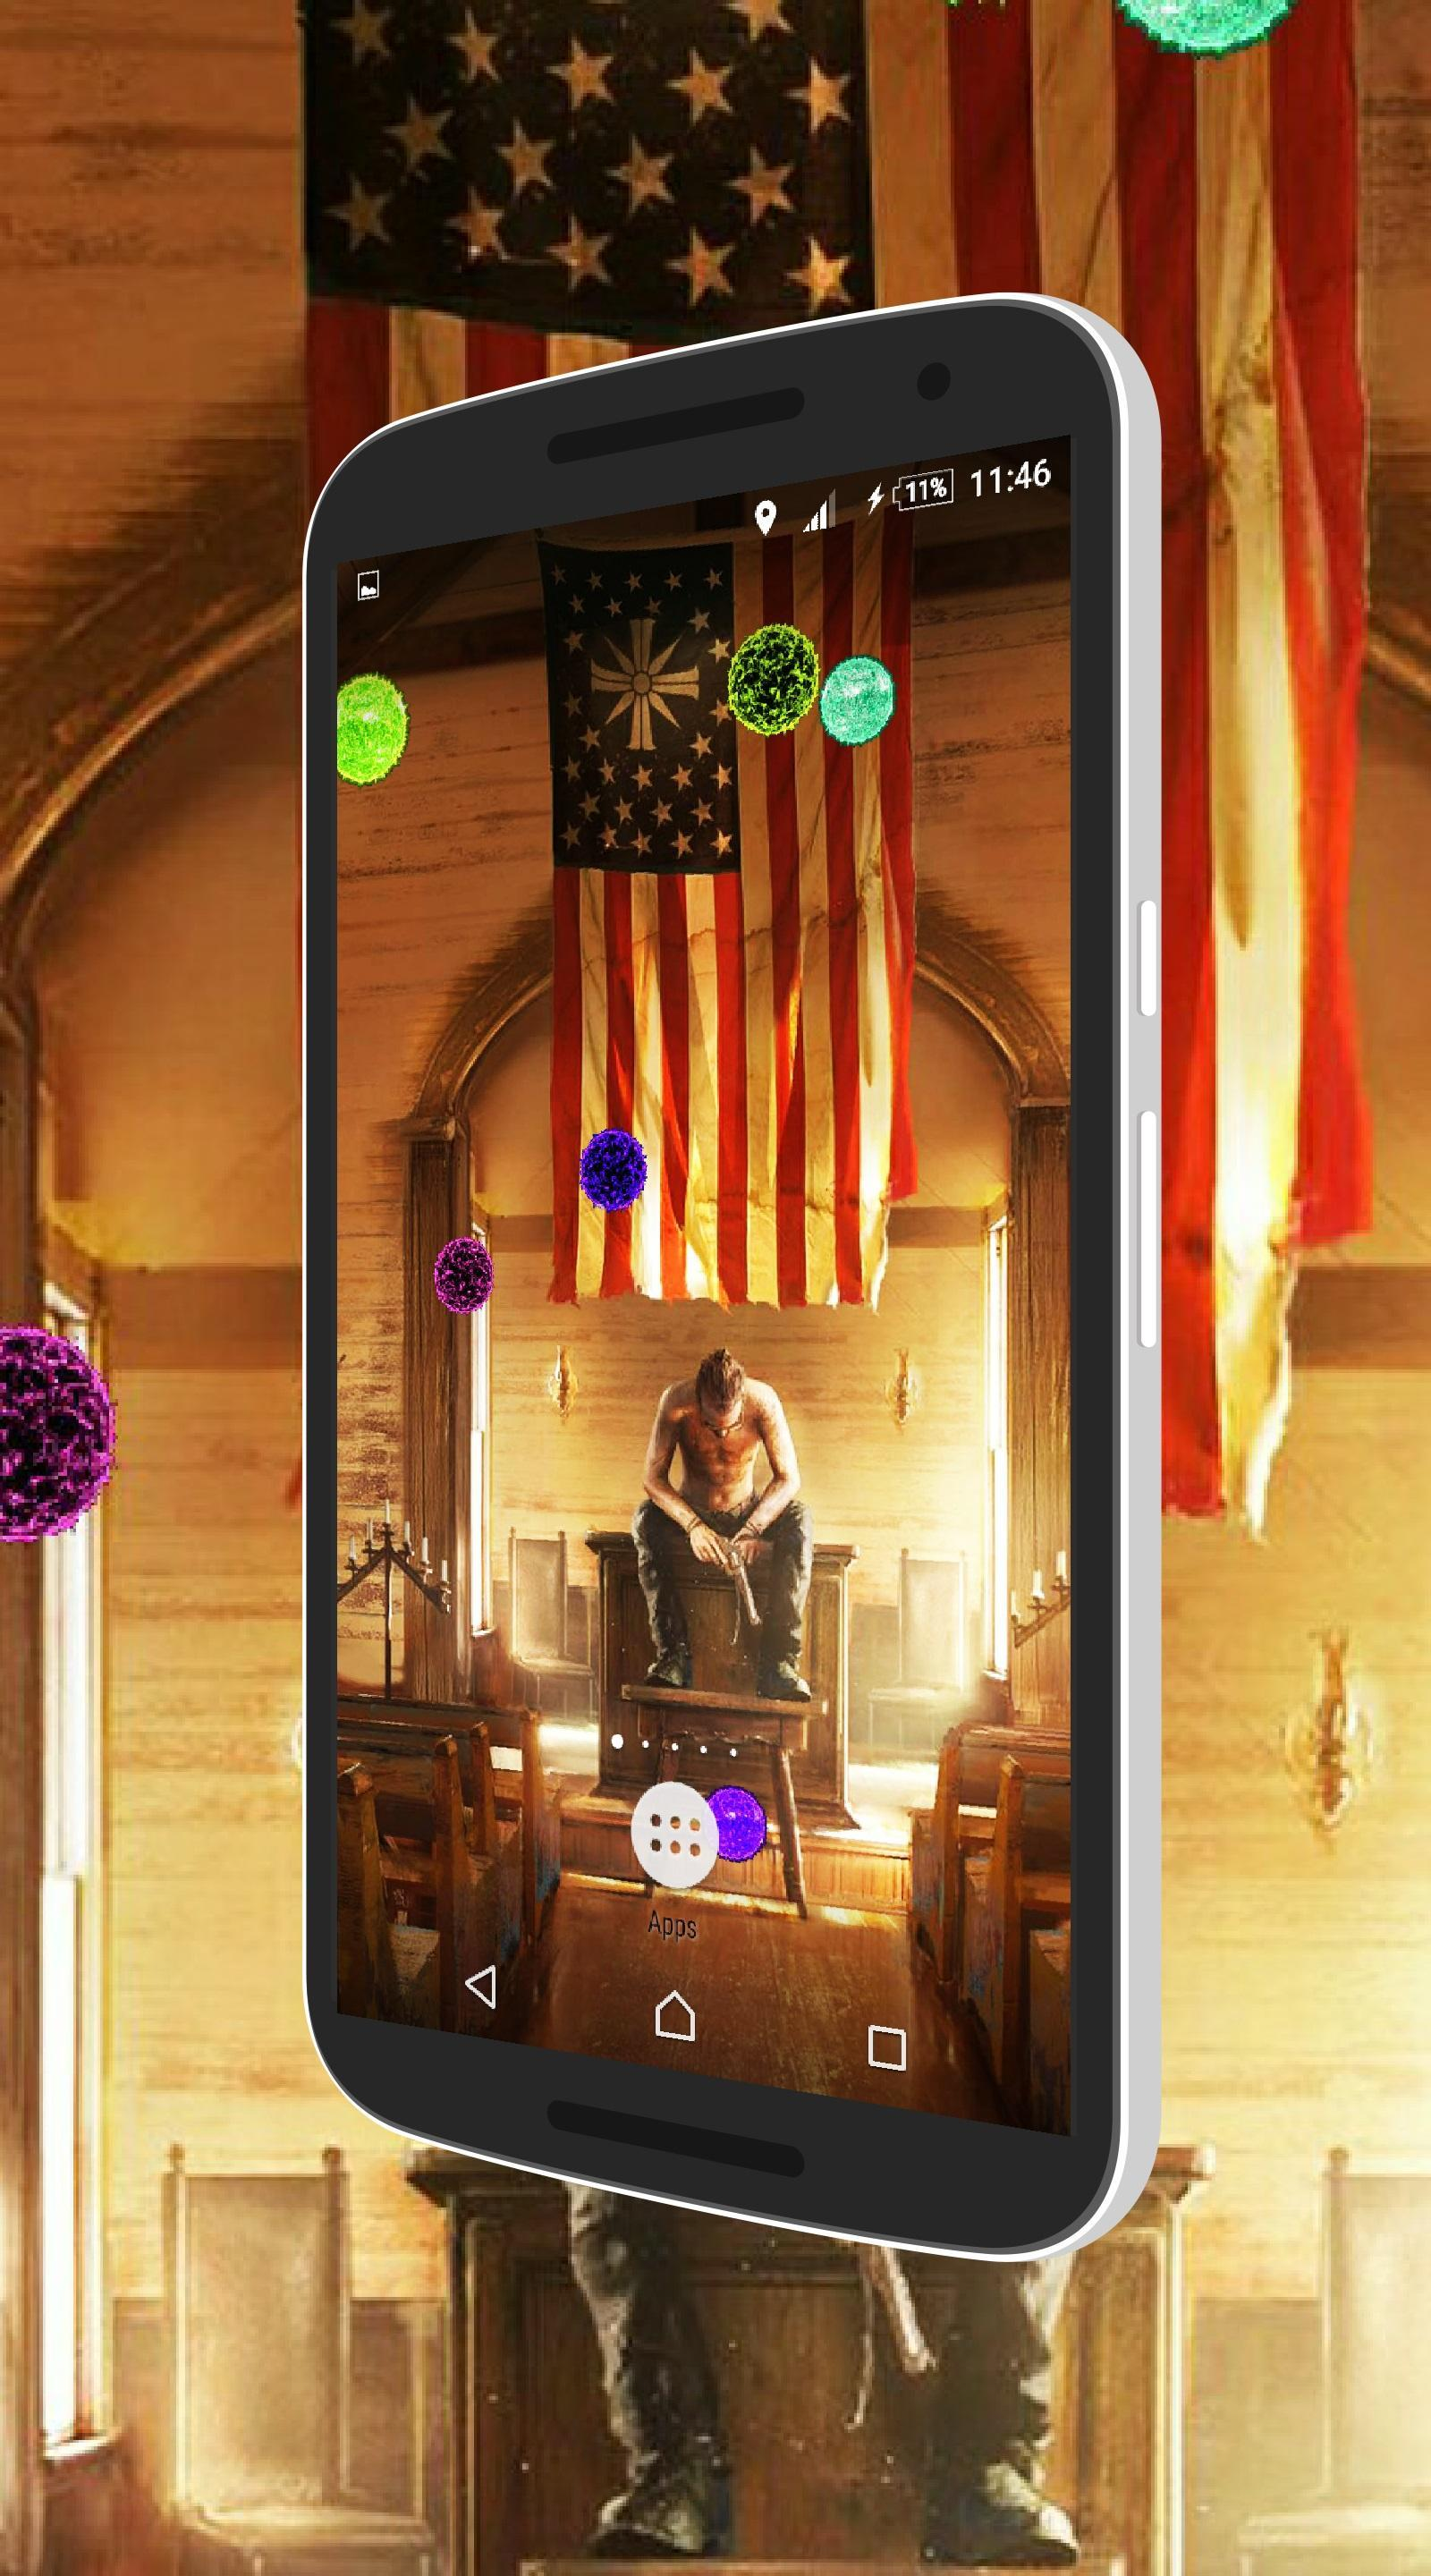 Far Cry 5 Hd Wallpaper For Android Apk Download